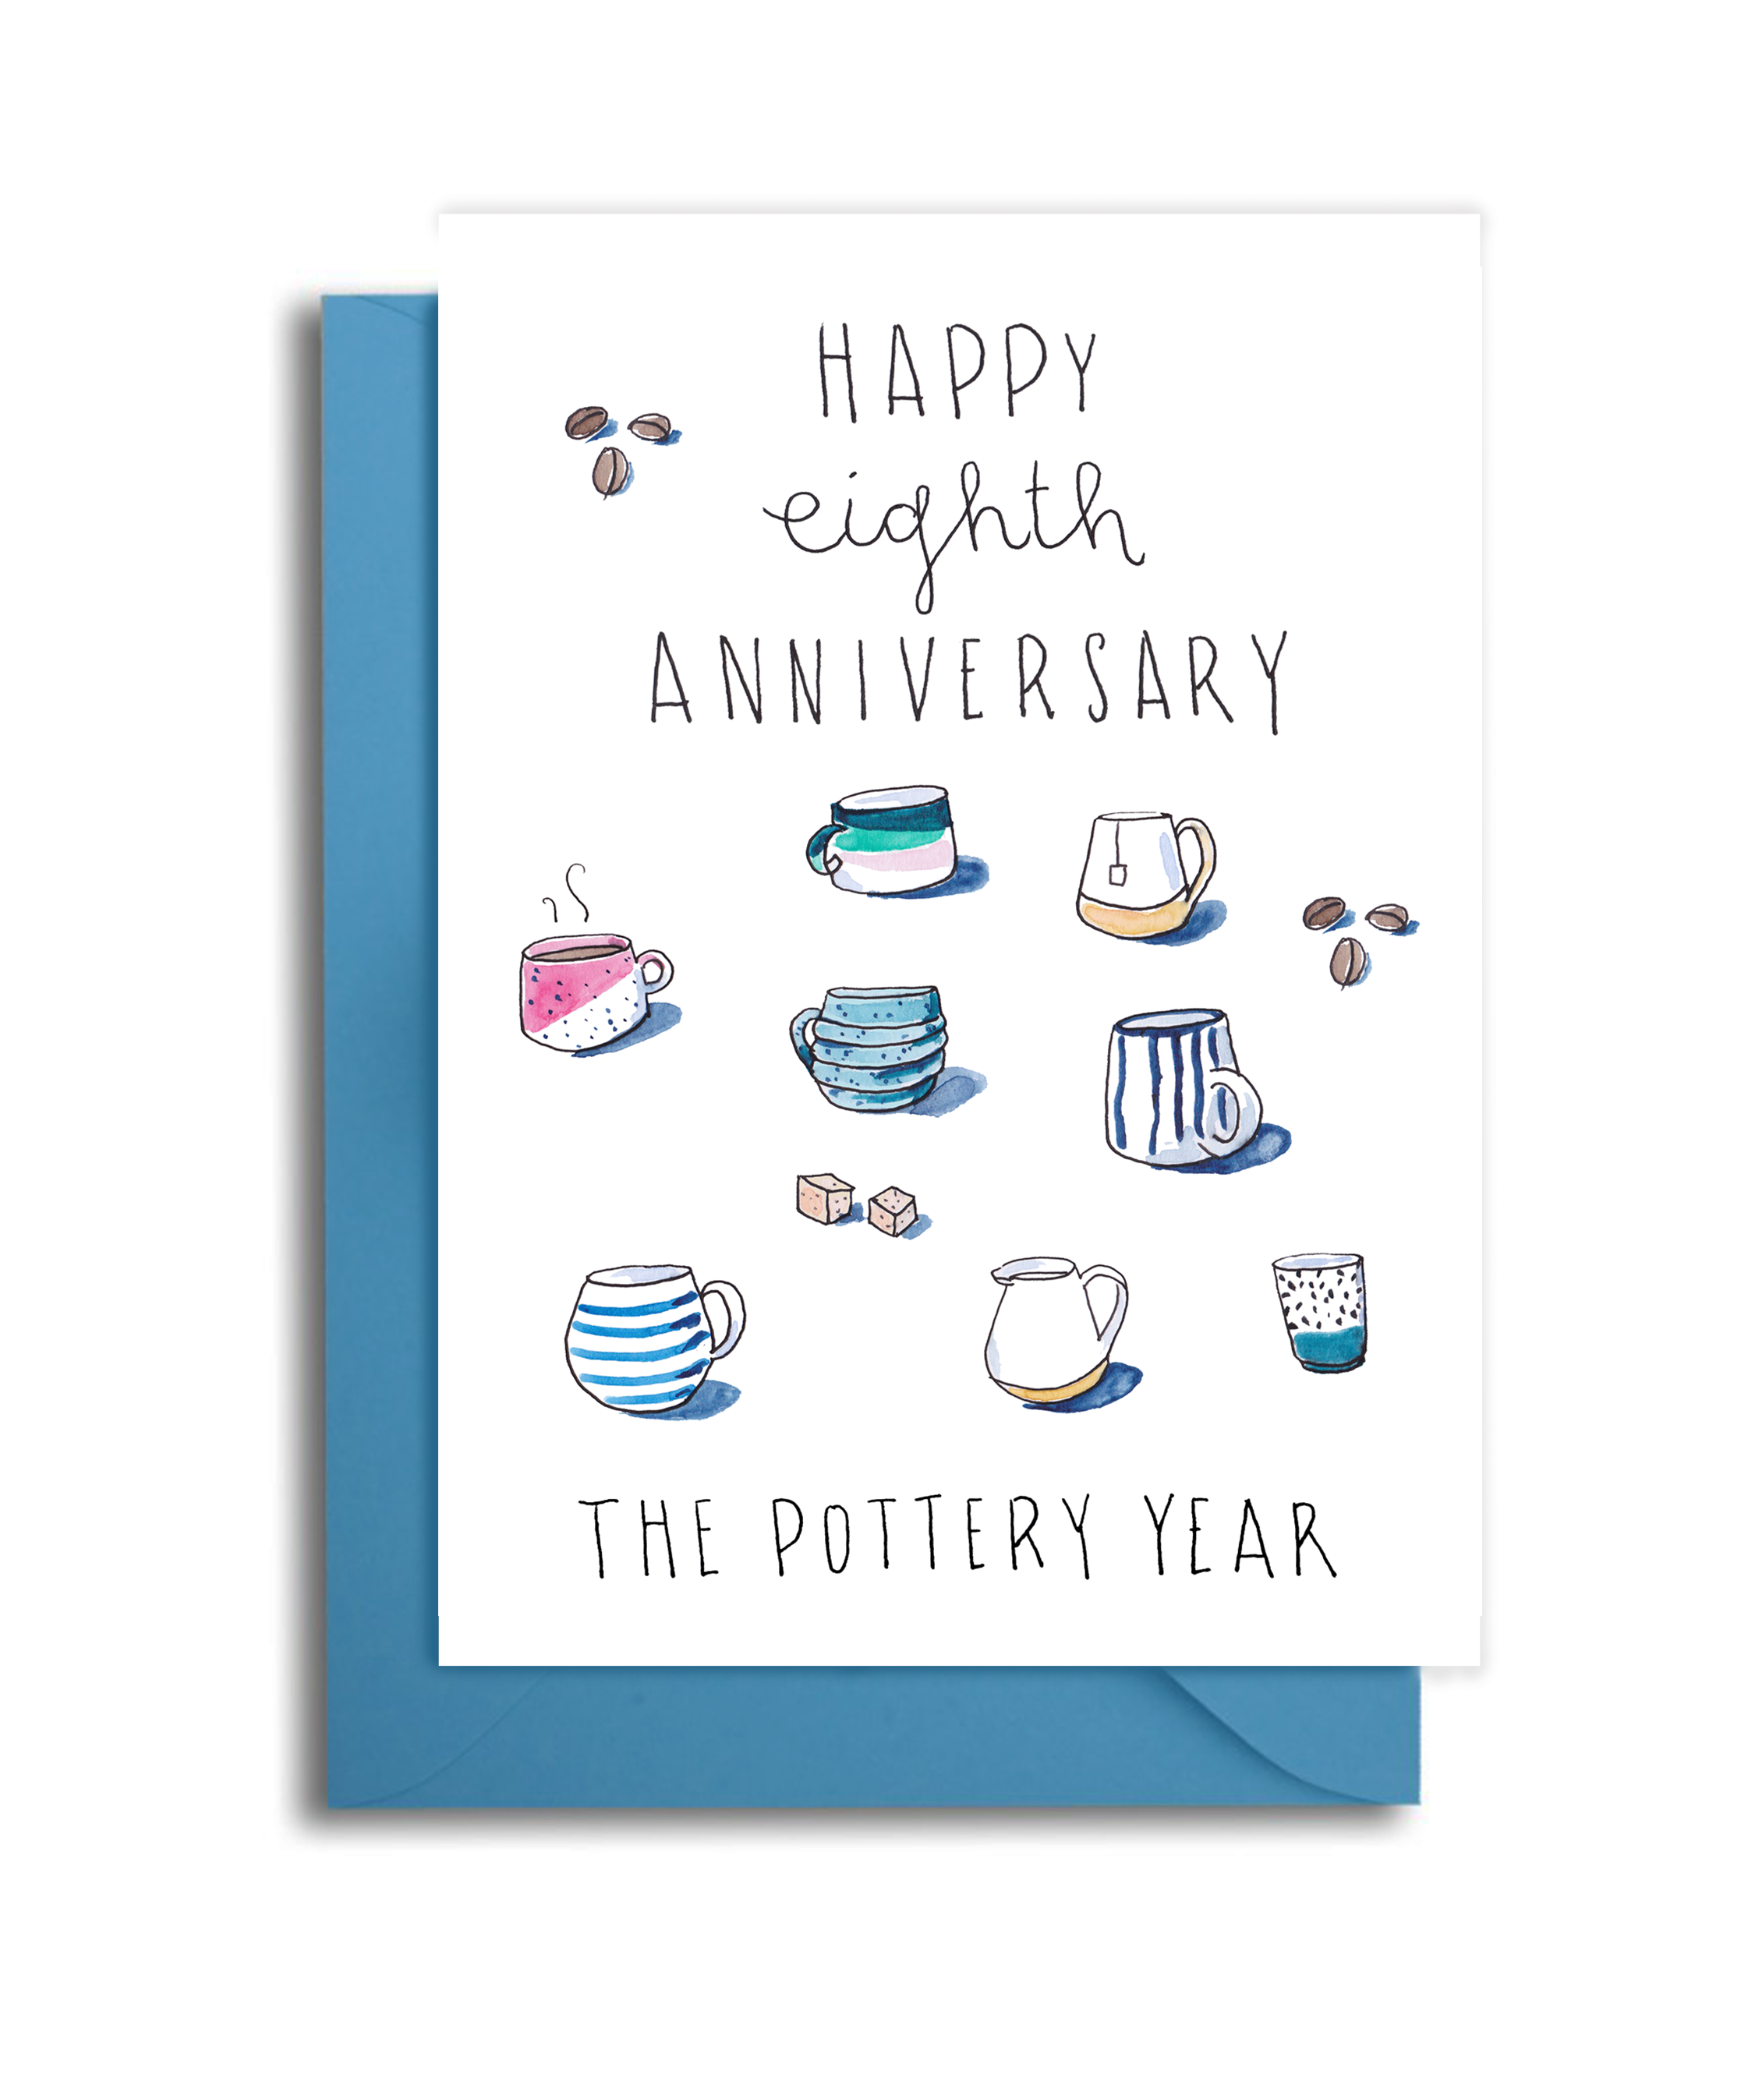 8th Wedding Anniversary Card - Pottery Themed Anniversary Card - 9th Anniversary Pottery Themed Card